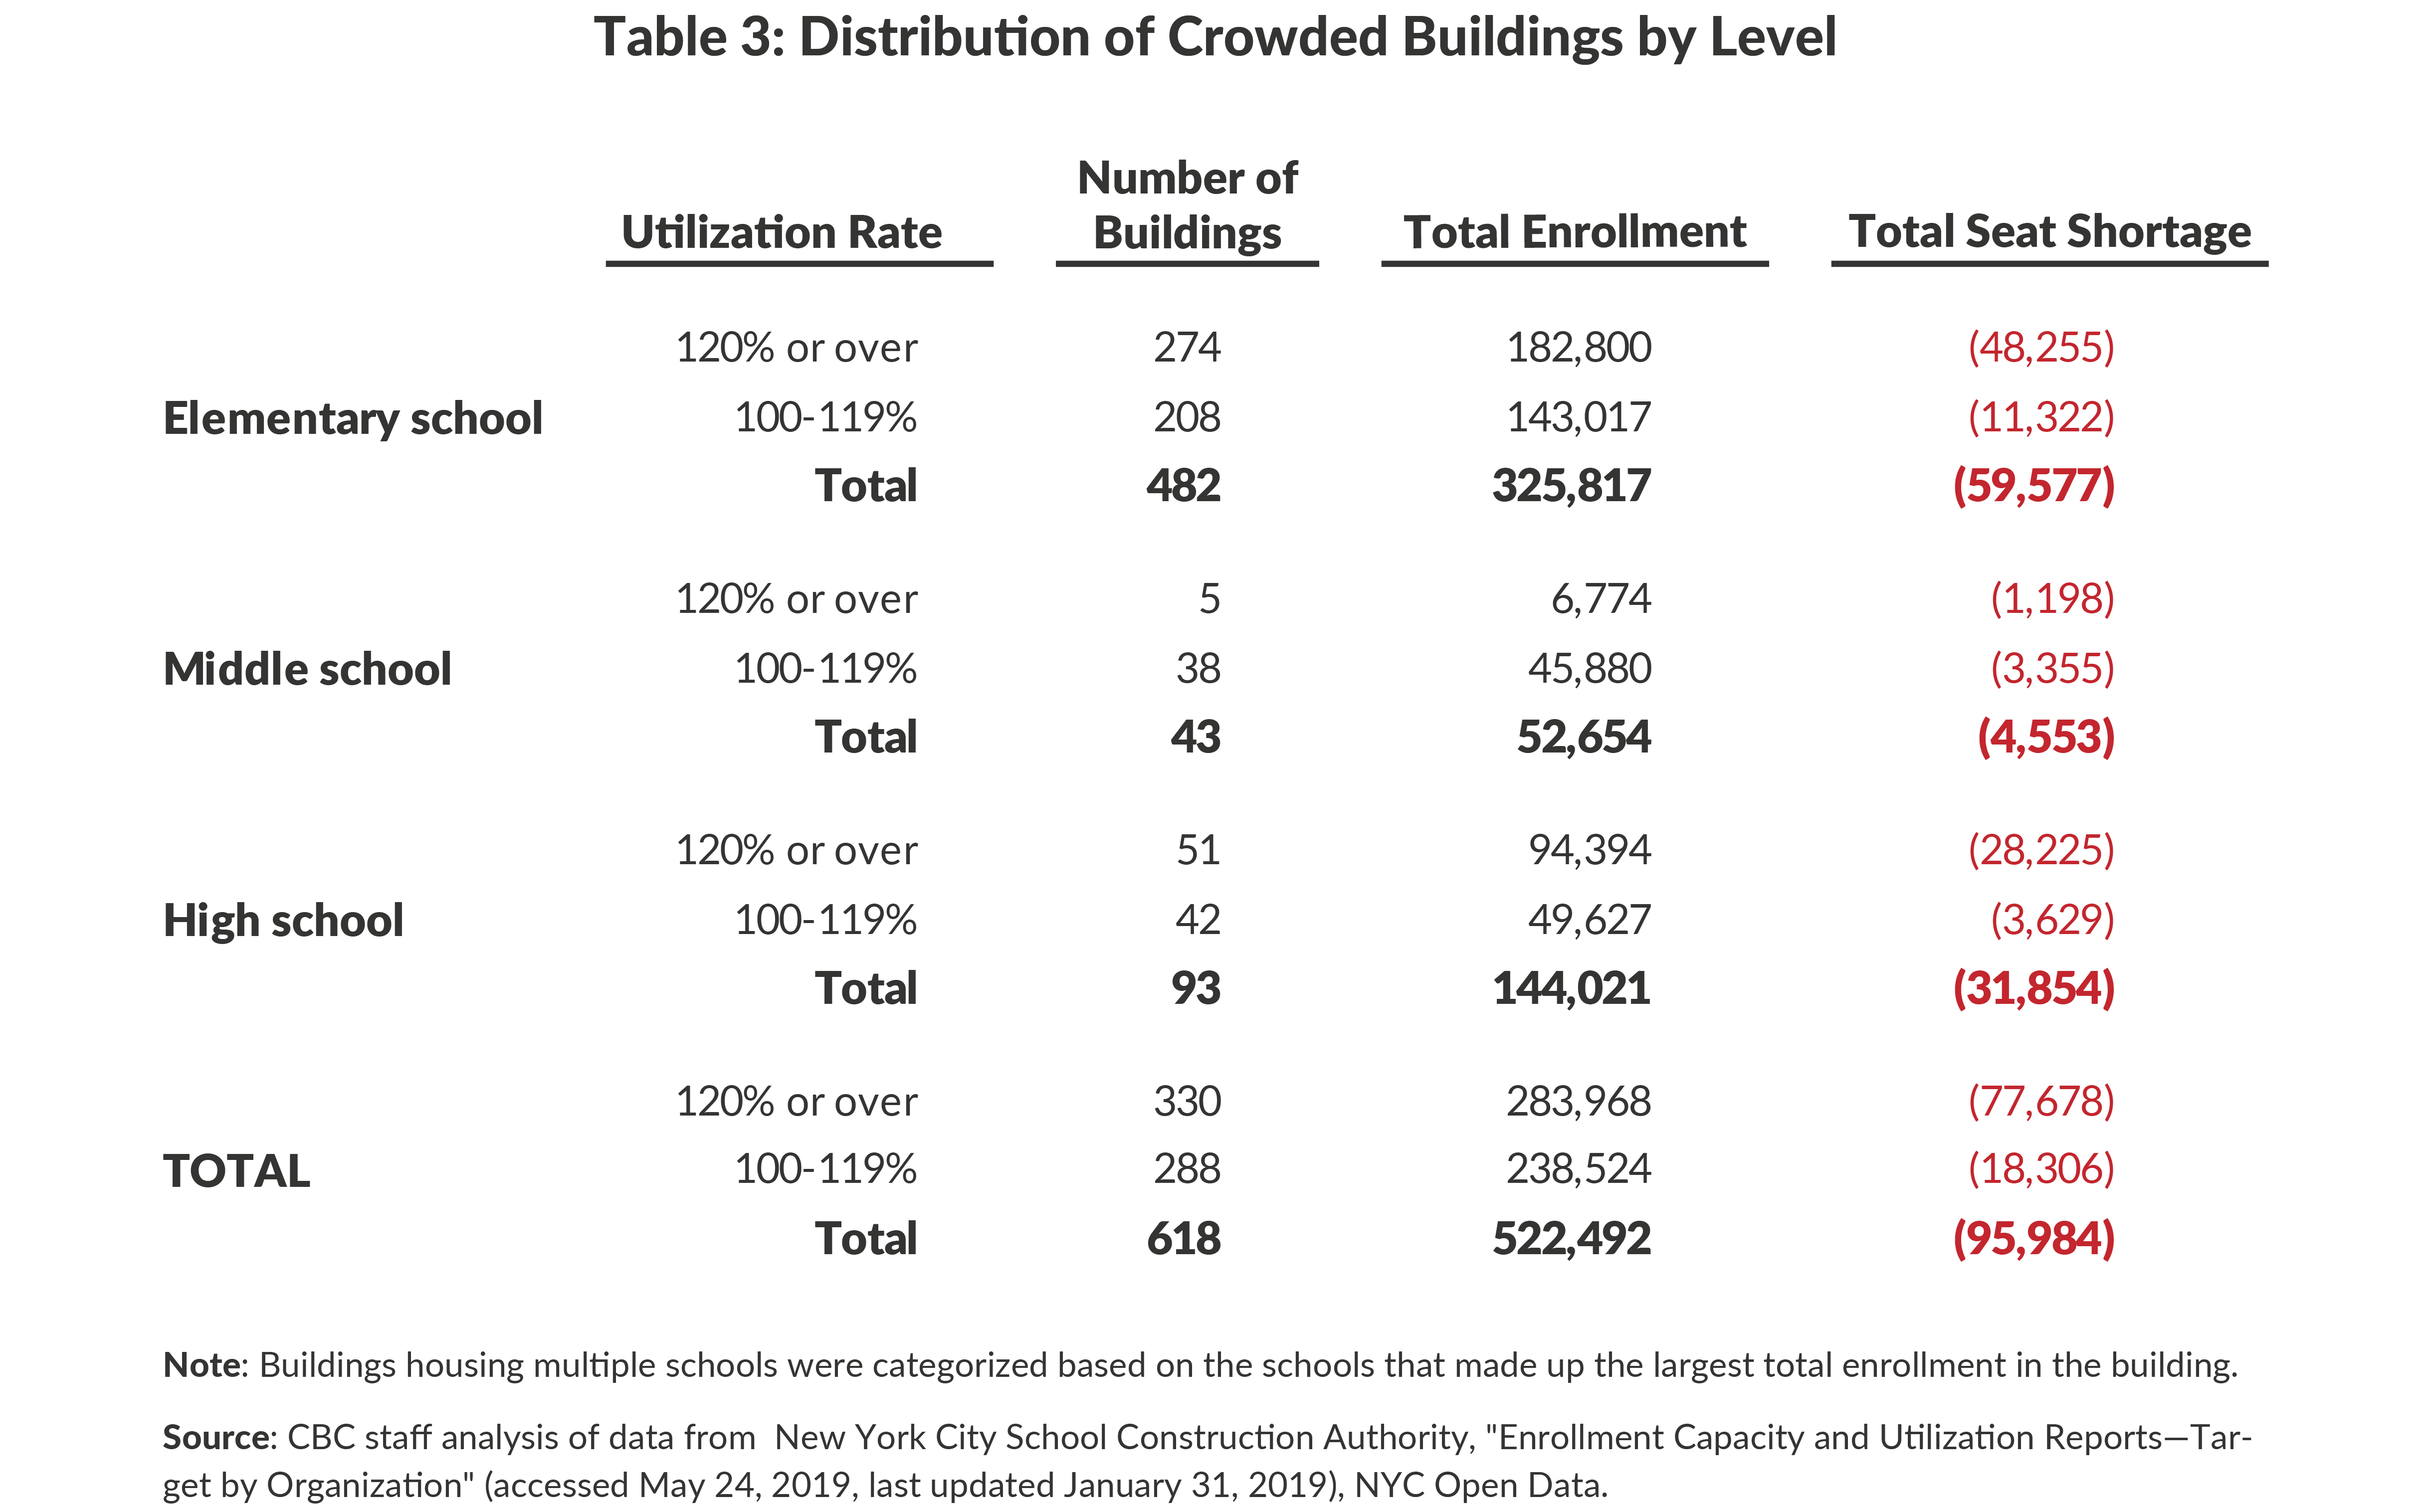 Table 3: Distribution of Crowded Buildings by Level